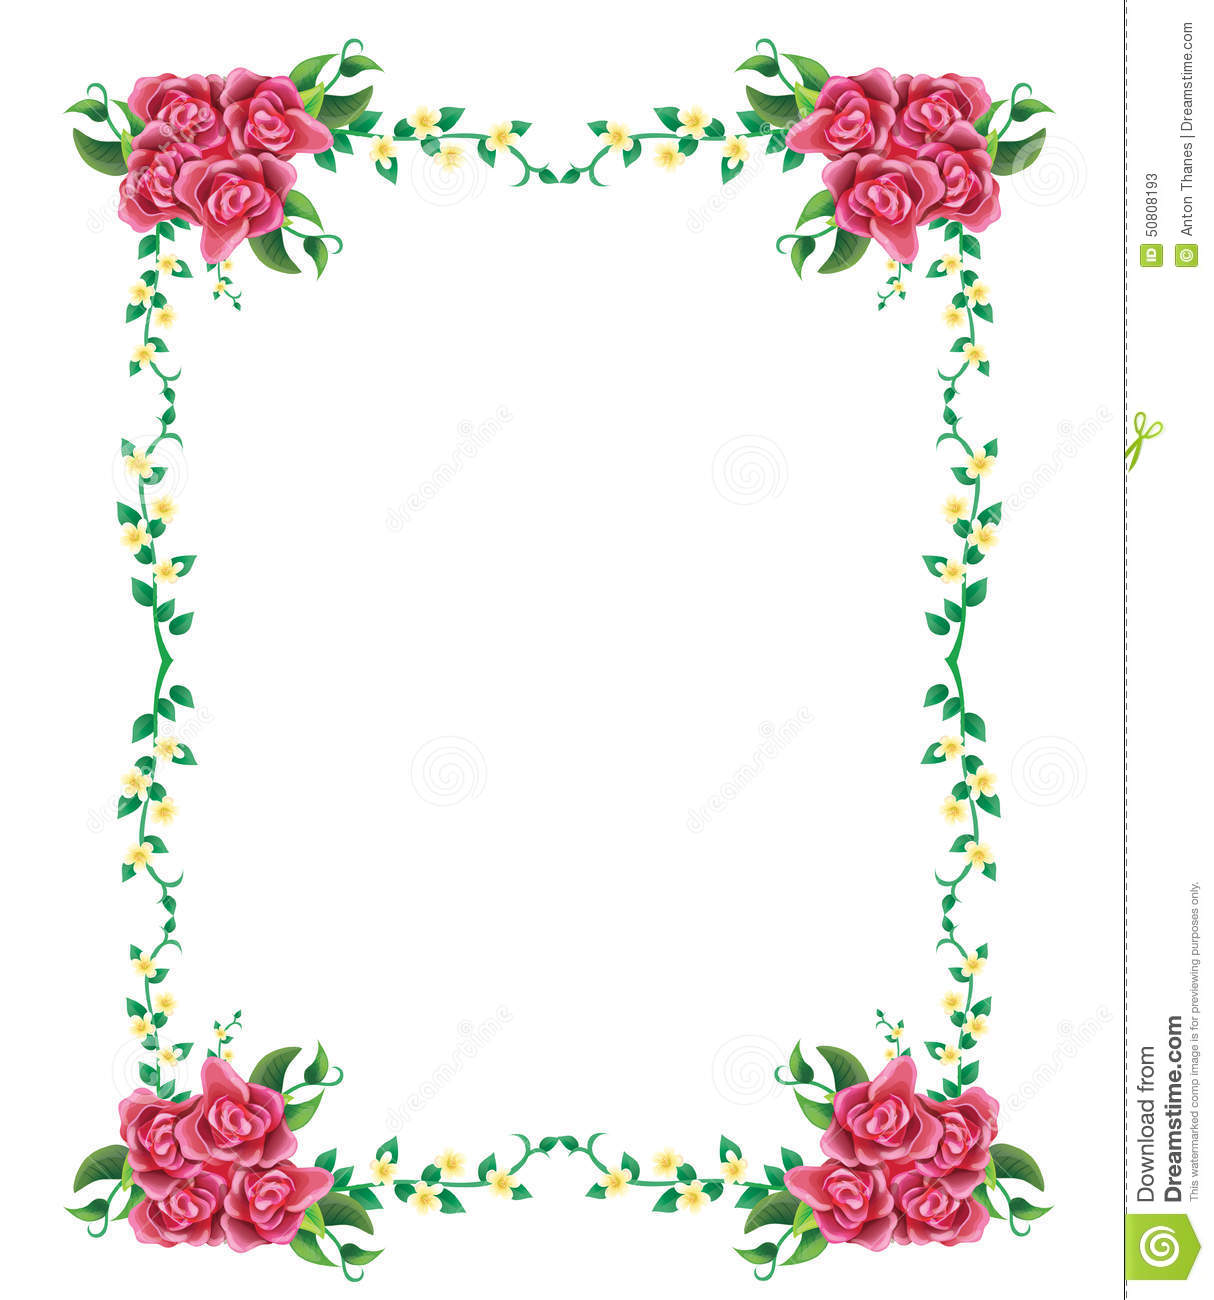 Wedding And Certificate Floral Border Border Clipart: Rose Flower Borders 20 Free Cliparts